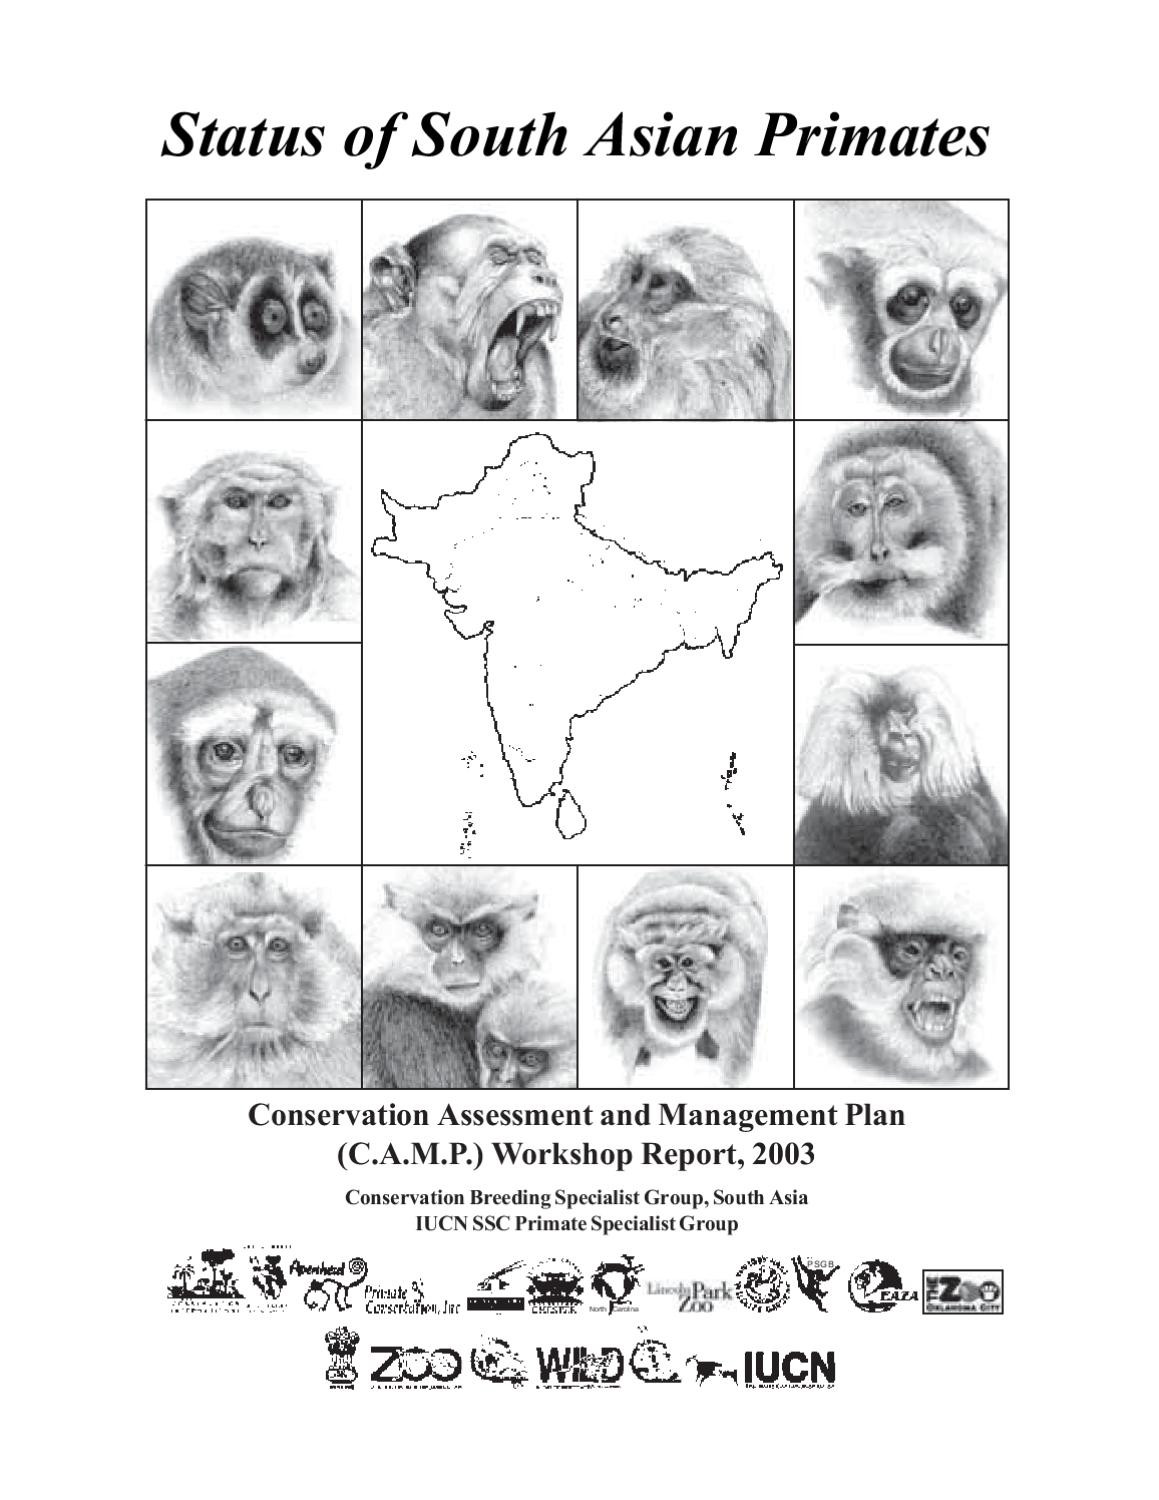 Status of South Asian Primate CAMP Report by ZOO-WILD - issuu